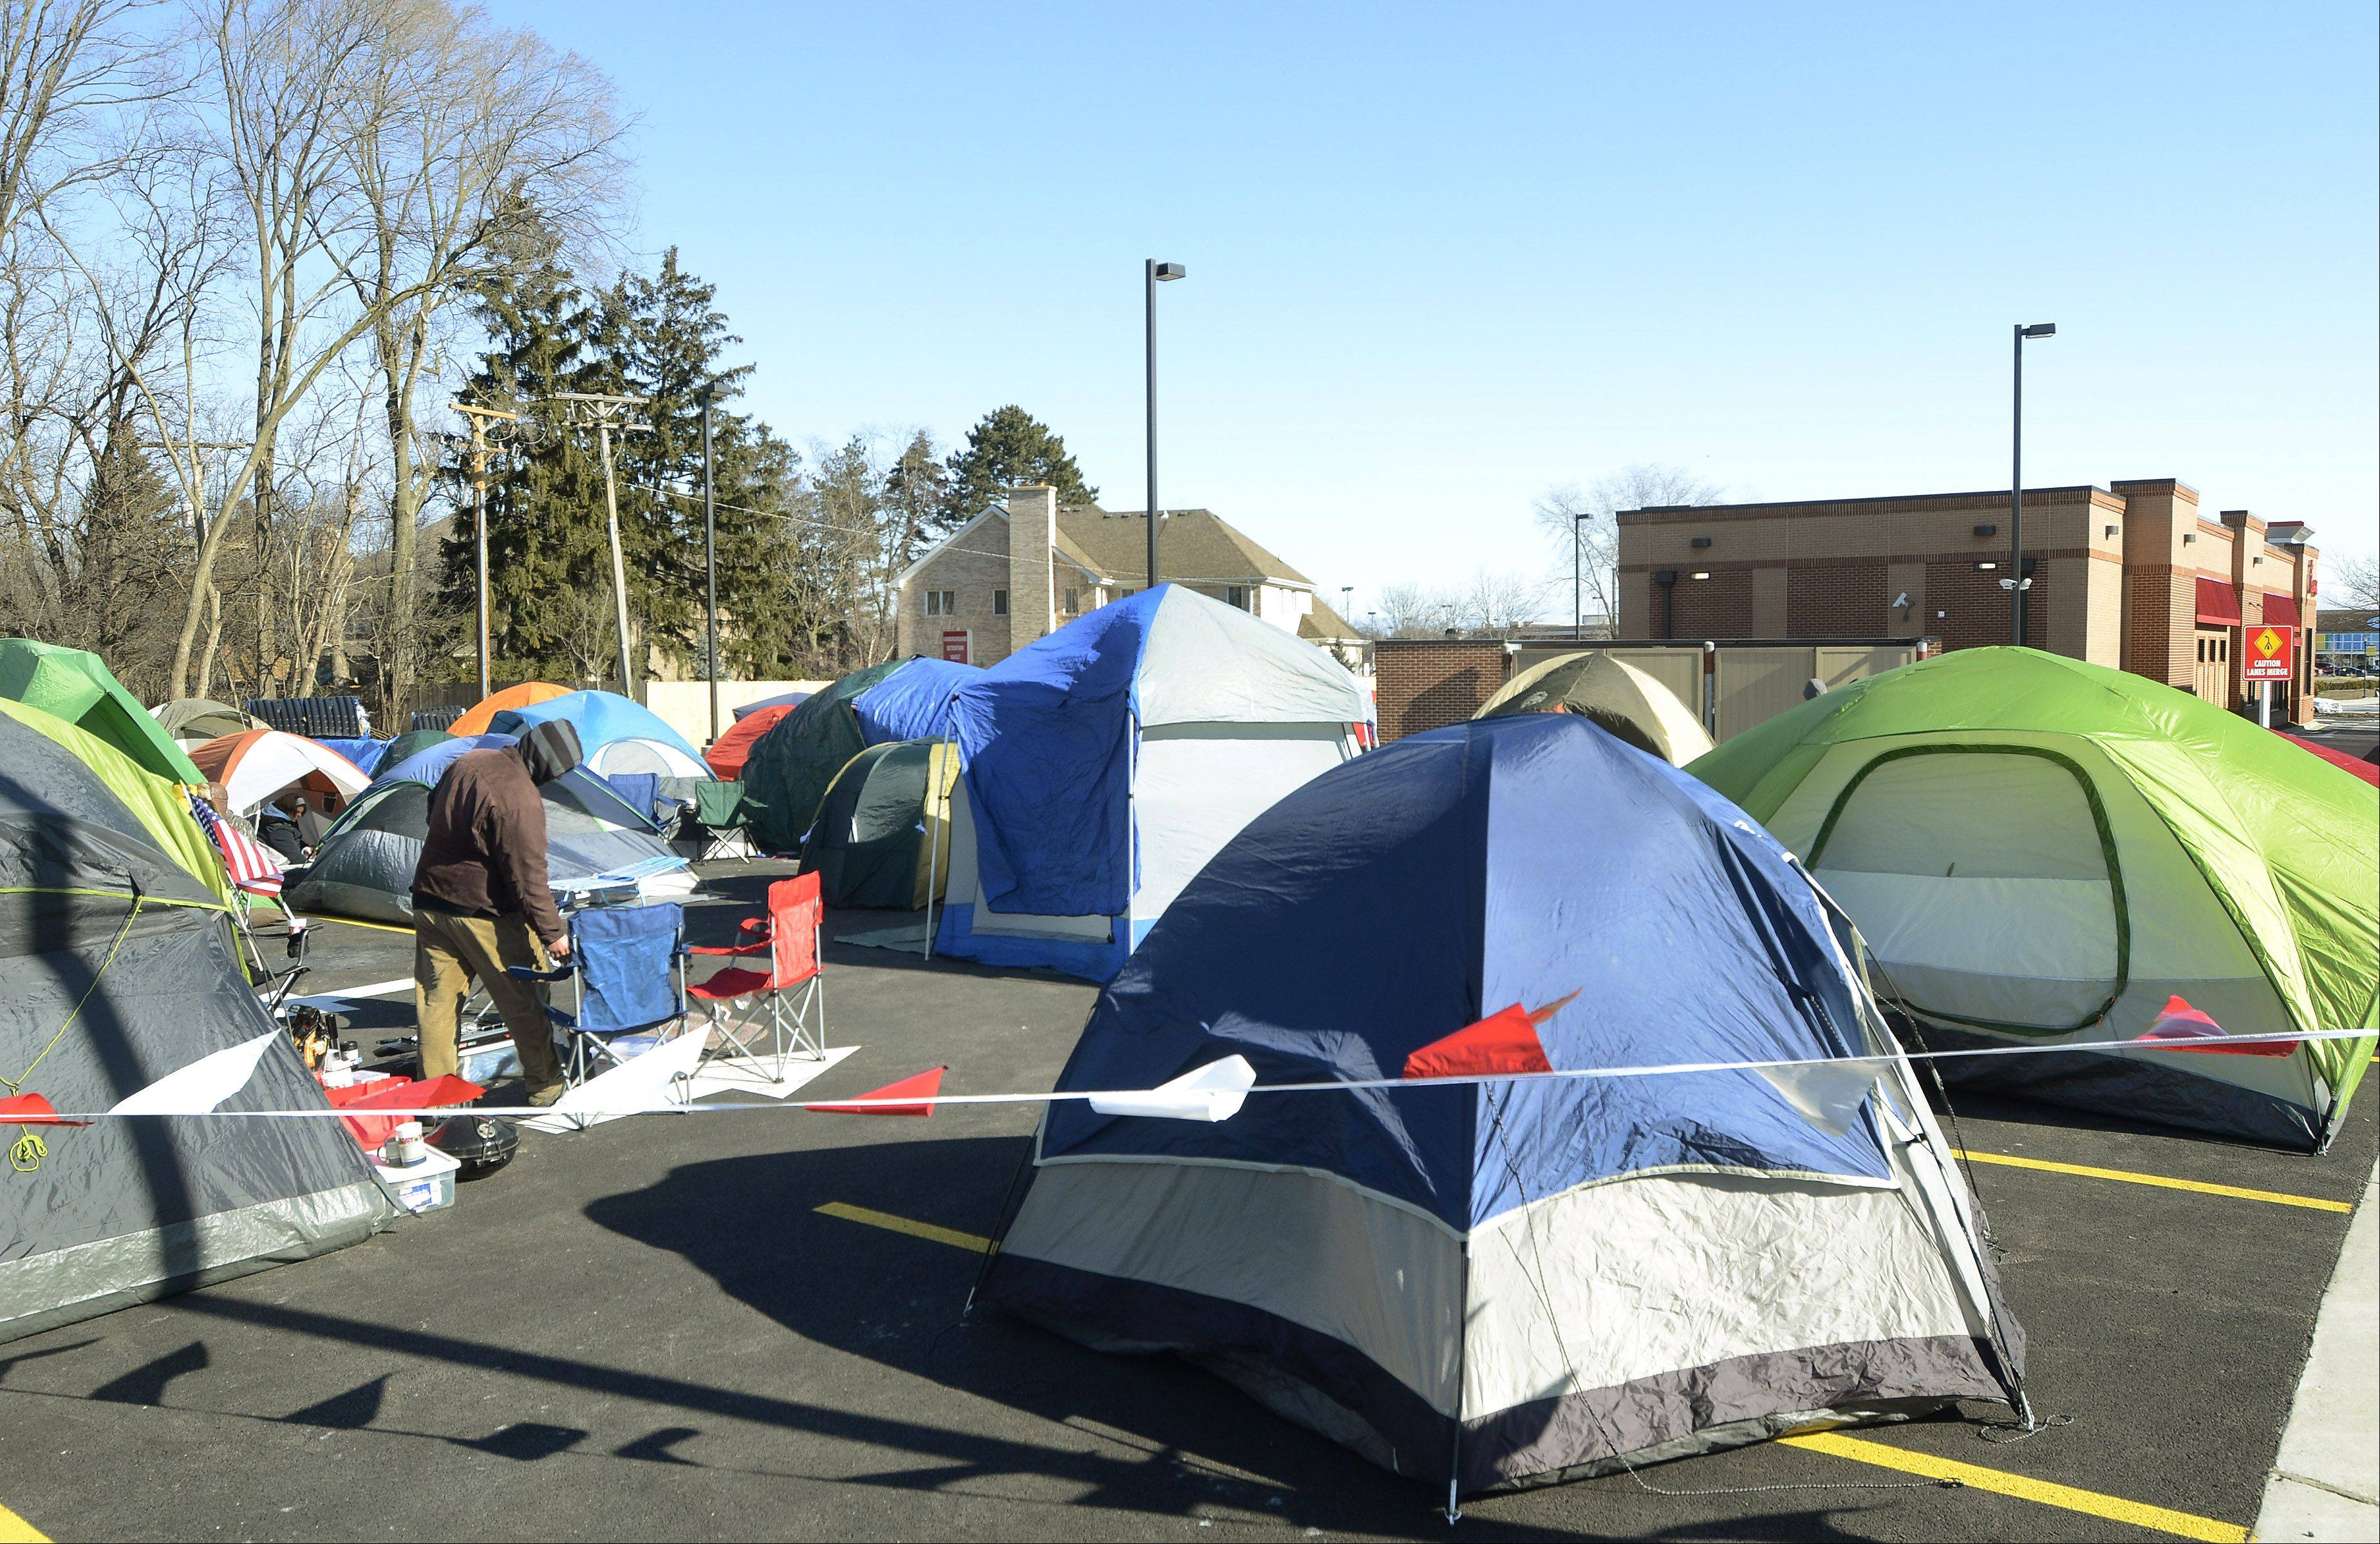 This is the tent city in the parking lot of the new Mount Prospect Chick- & Tent city outside Chick-fil-A in Mt. Prospect